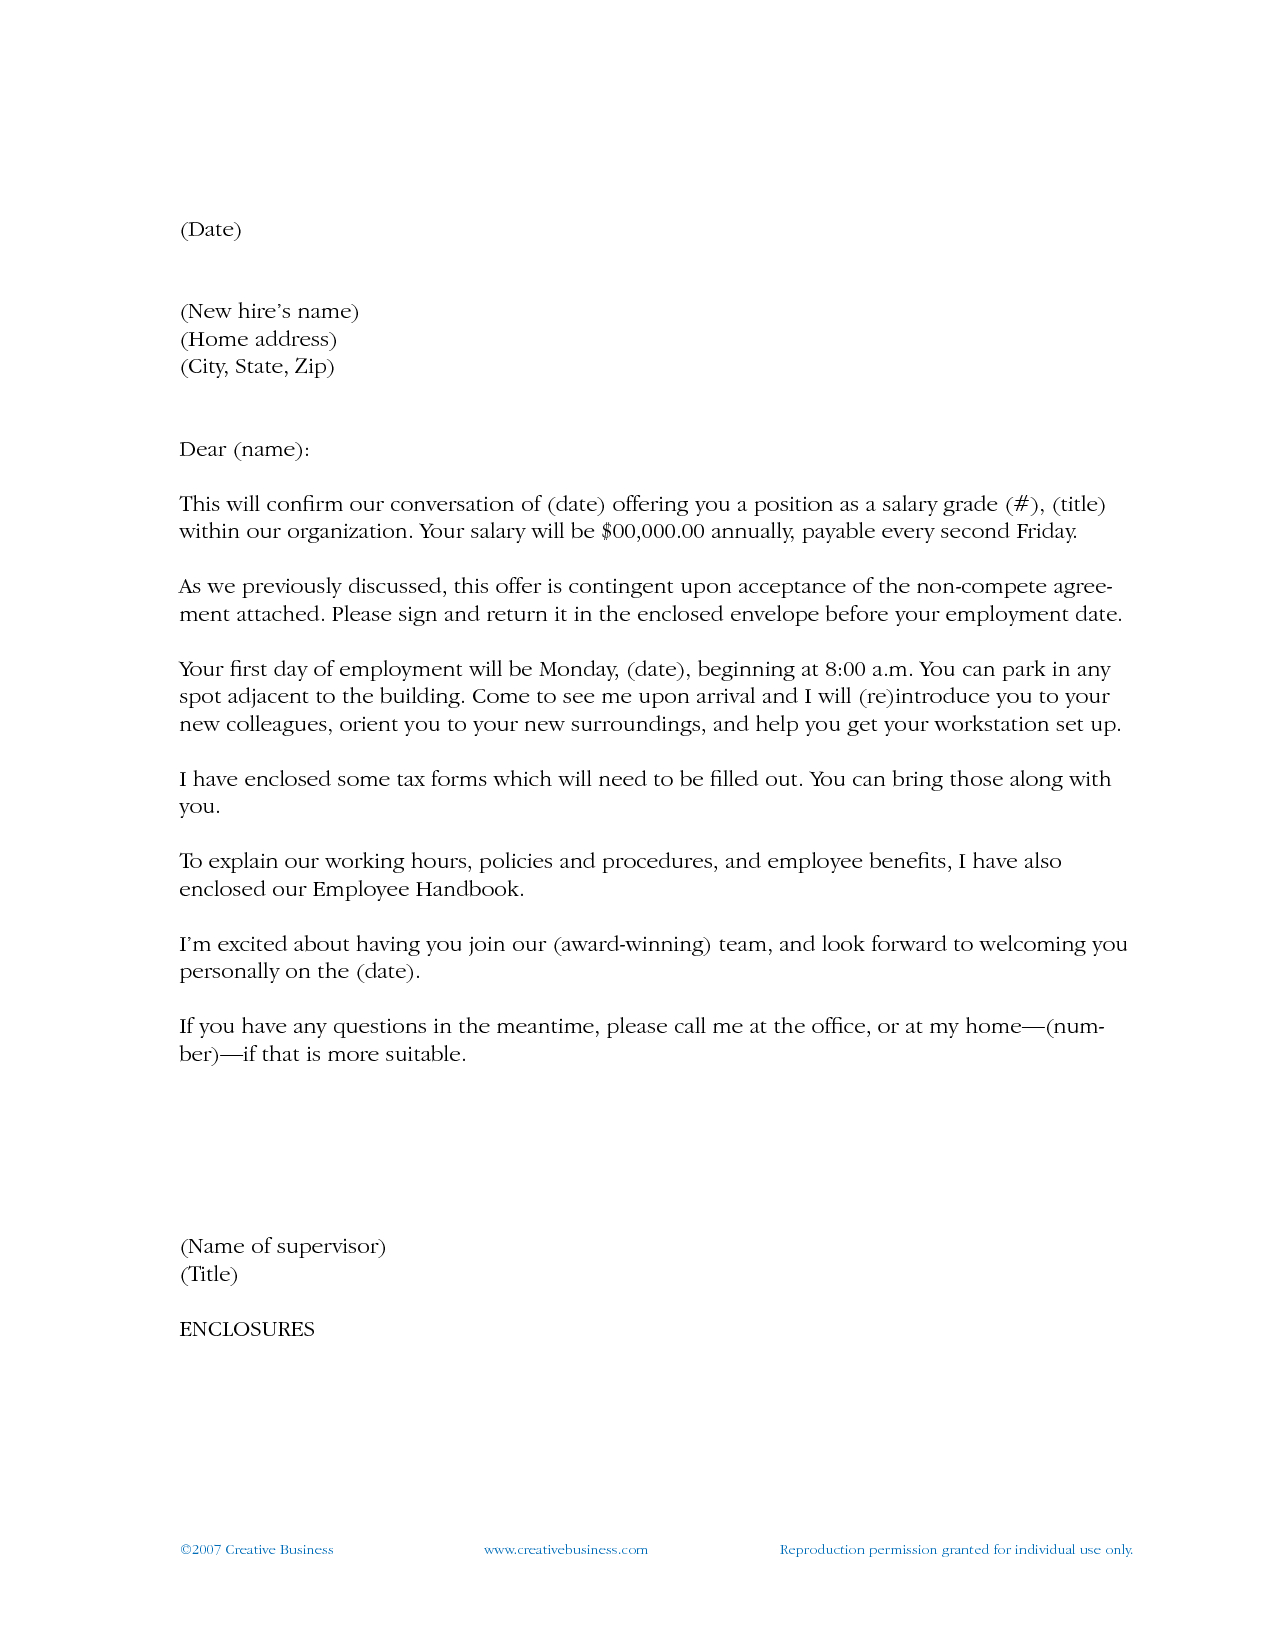 New Employee Welcome Letter Sample Template - How to Write A Wel E Letter to A New Employee Letter